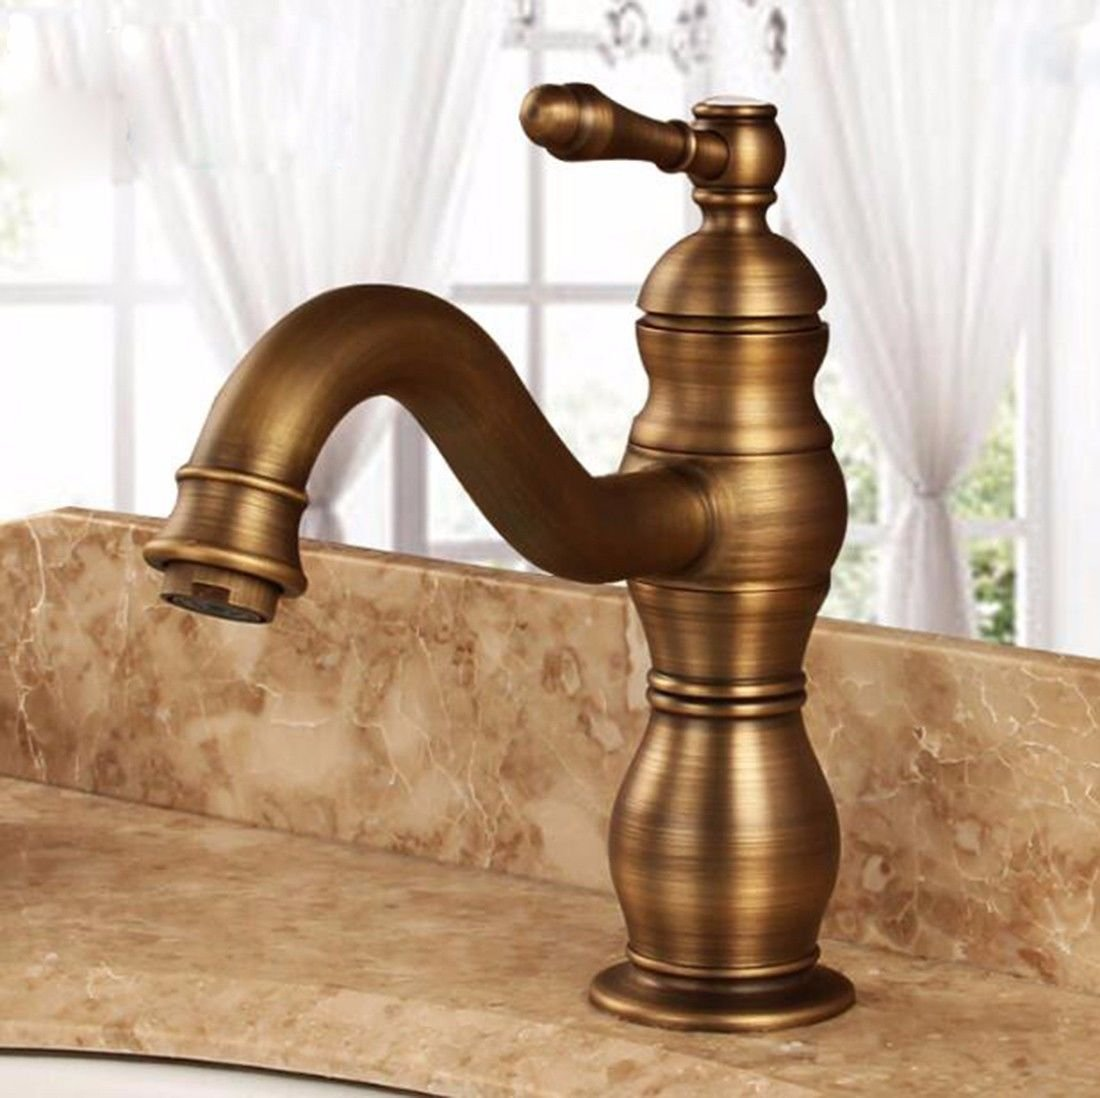 C Hlluya Professional Sink Mixer Tap Kitchen Faucet Antique basin faucet full copper hot and cold gold antique Washbasin Faucet single hole in the redation of the C